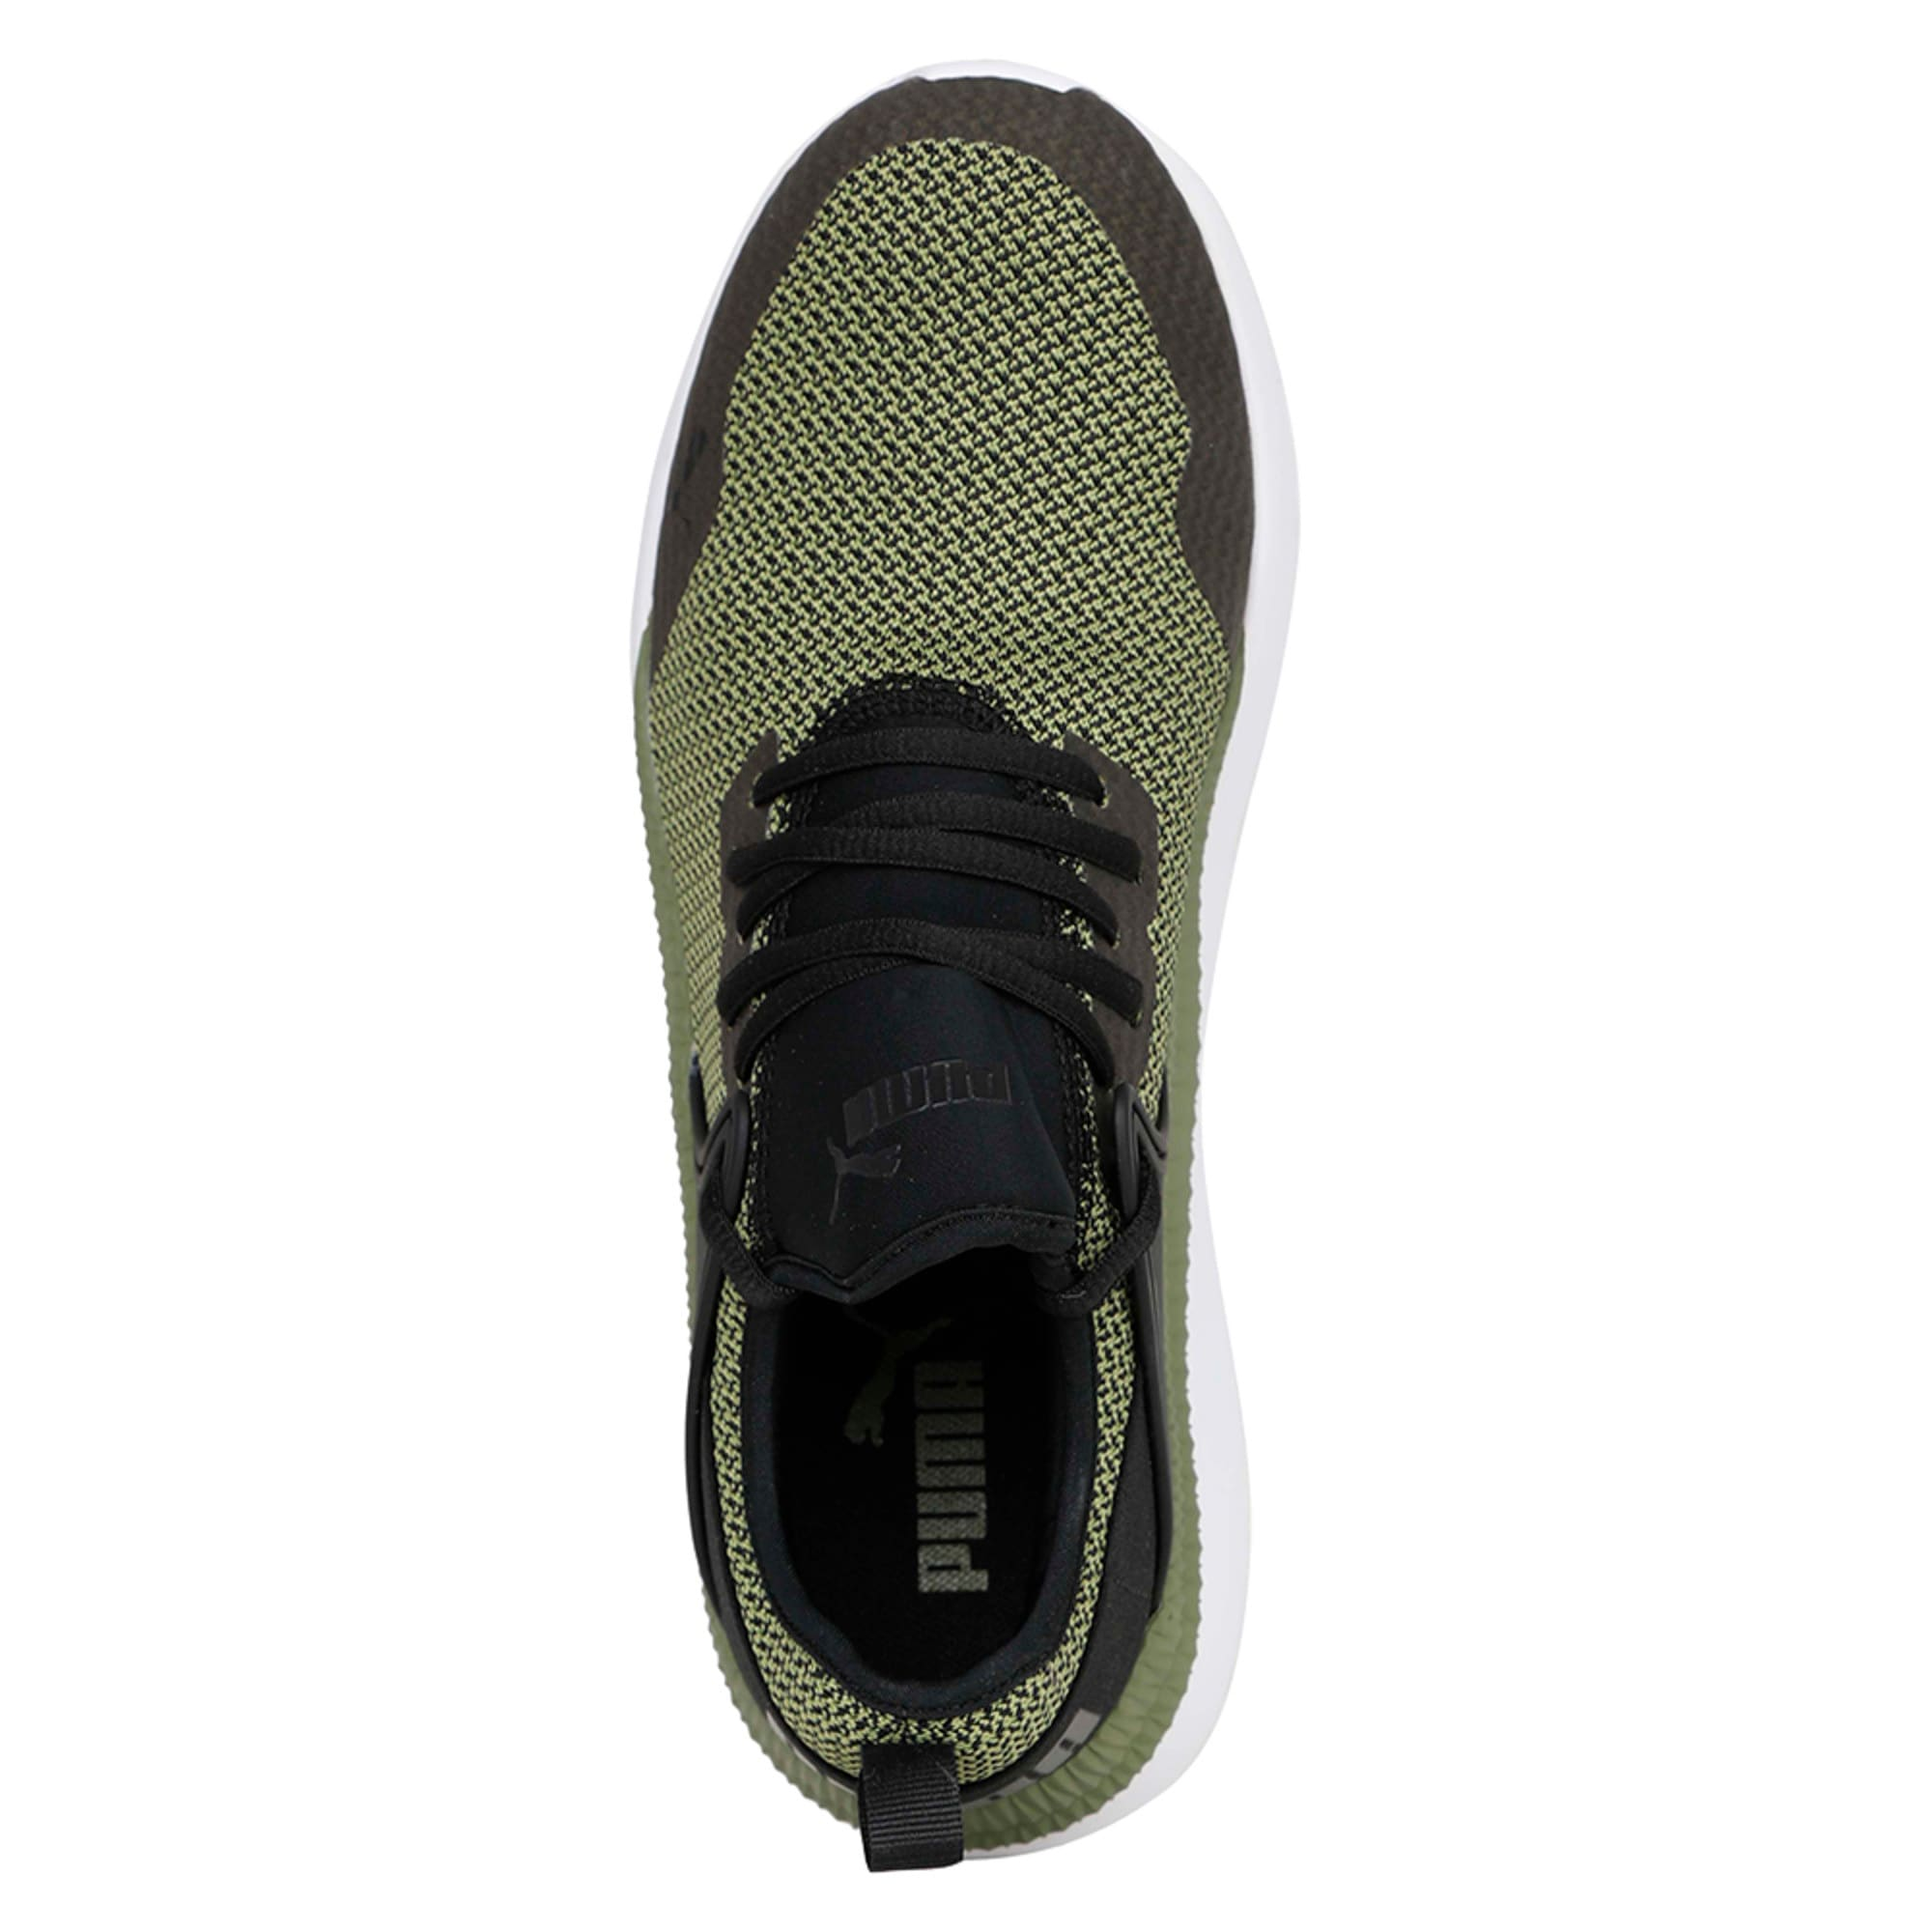 Thumbnail 3 of Pacer Next Cage GK Trainers, Puma Black-Capulet Olive, medium-IND